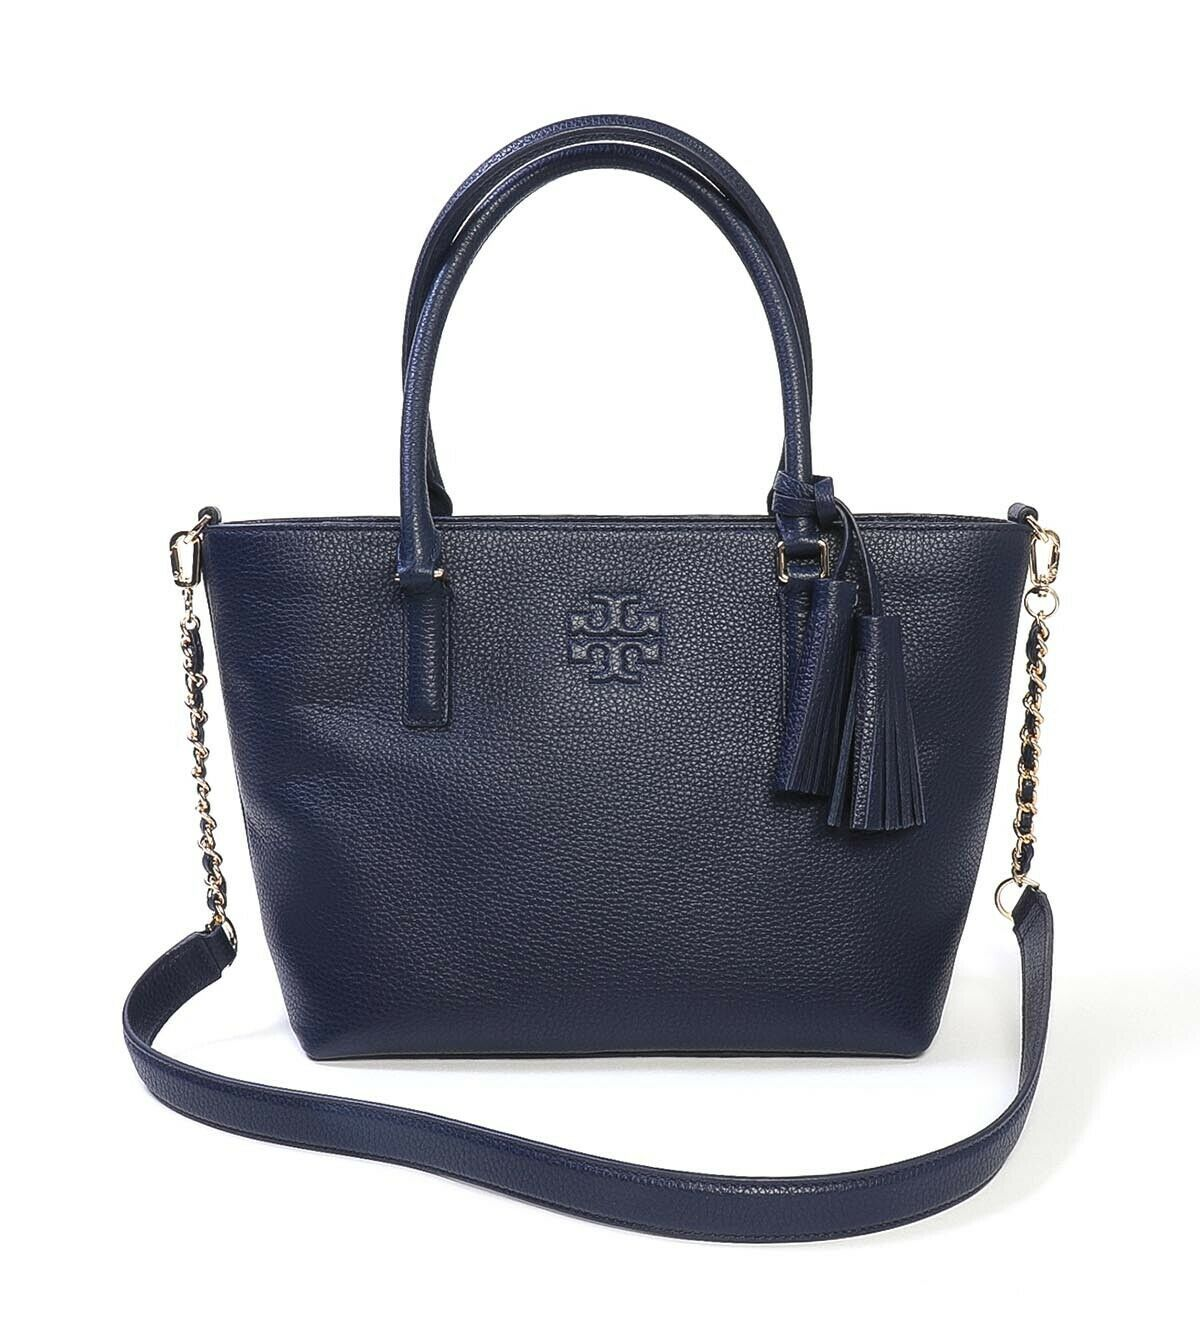 Primary image for NWT TORY BURCH Thea Small Convertible Tote Gold Chain Strap Royal Navy 55366